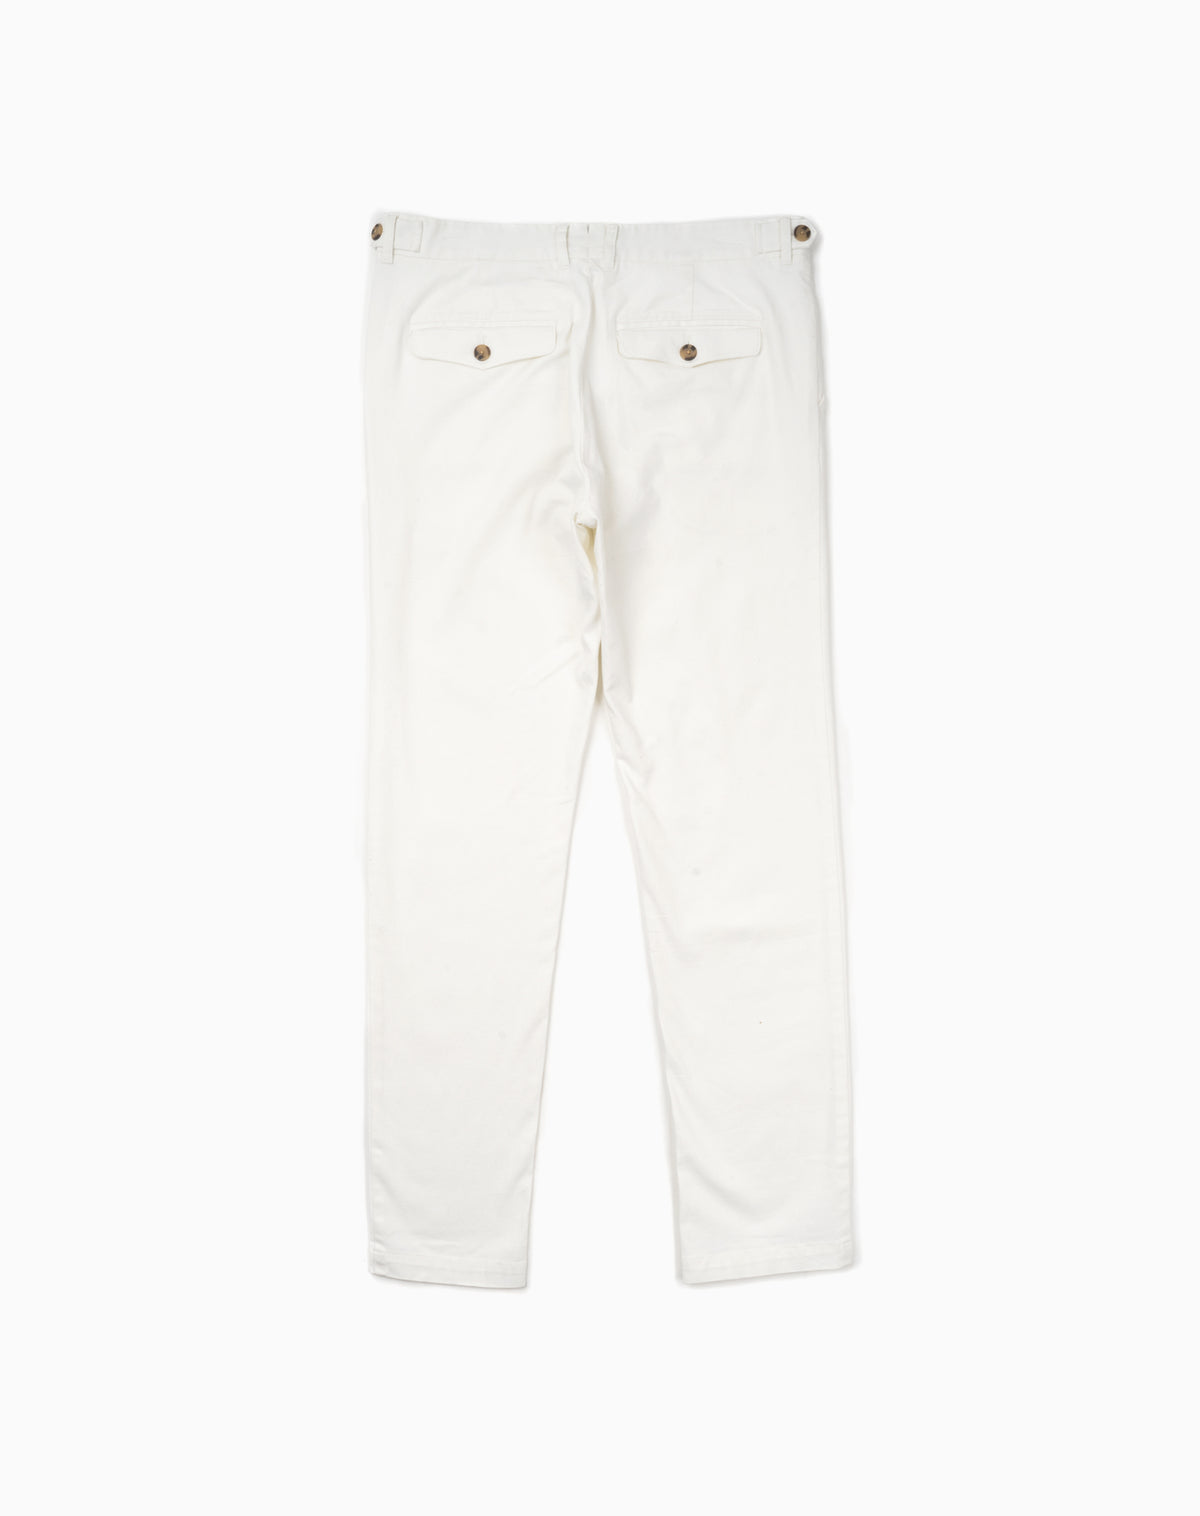 Gates Pant in White